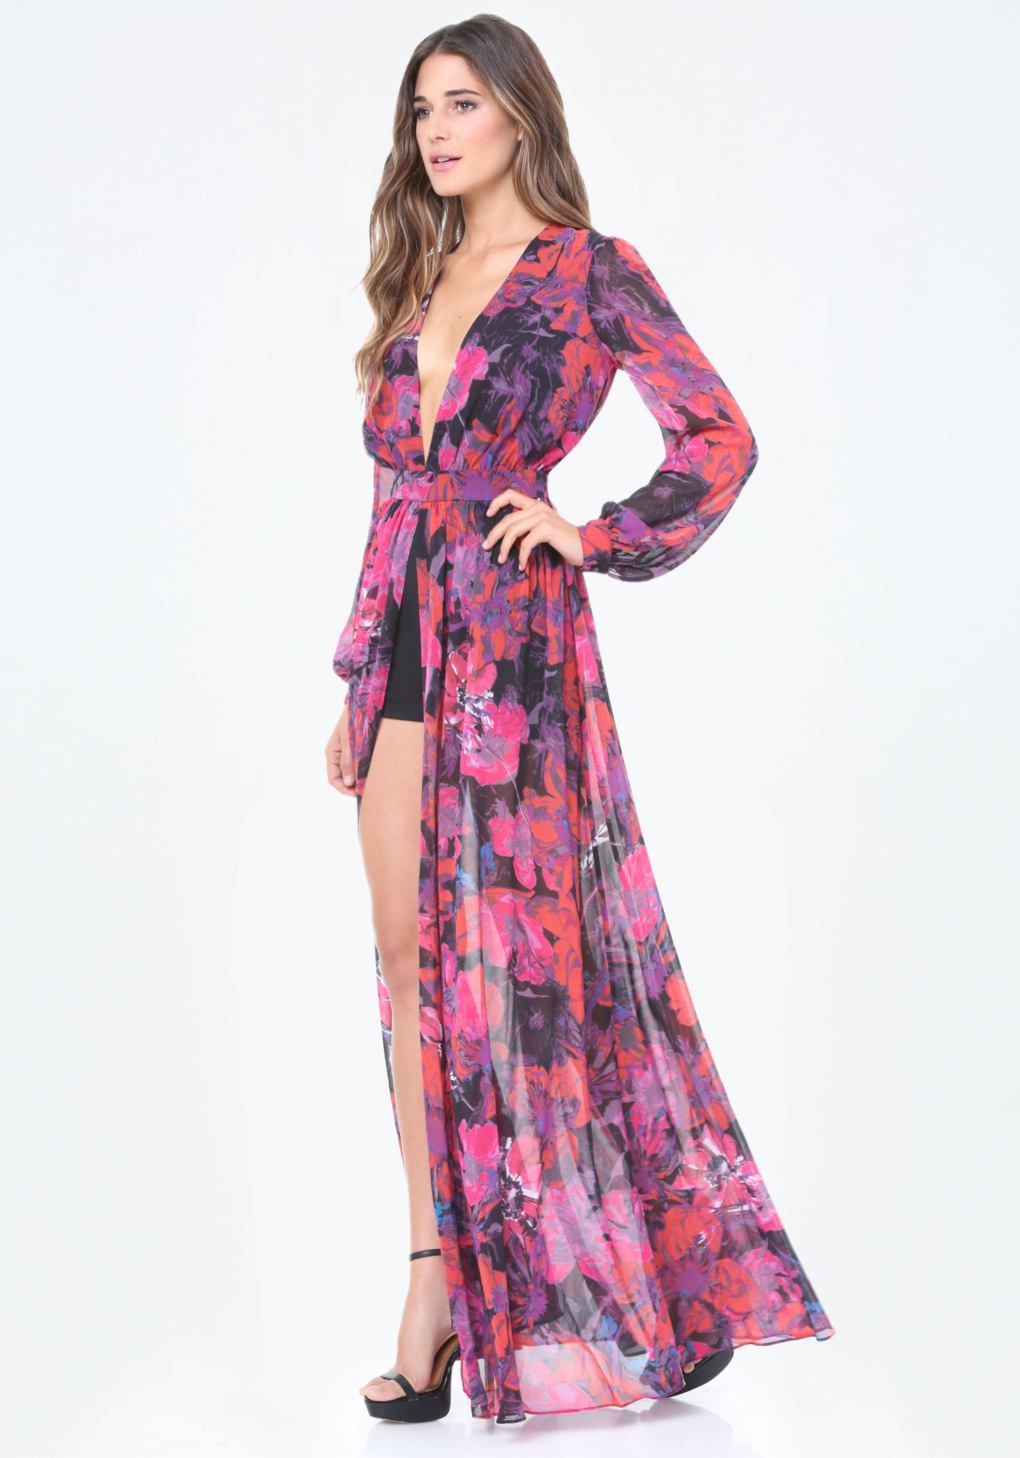 52e8d66eefb7 Lyst - Bebe Print Slit Shorts Gown in Pink